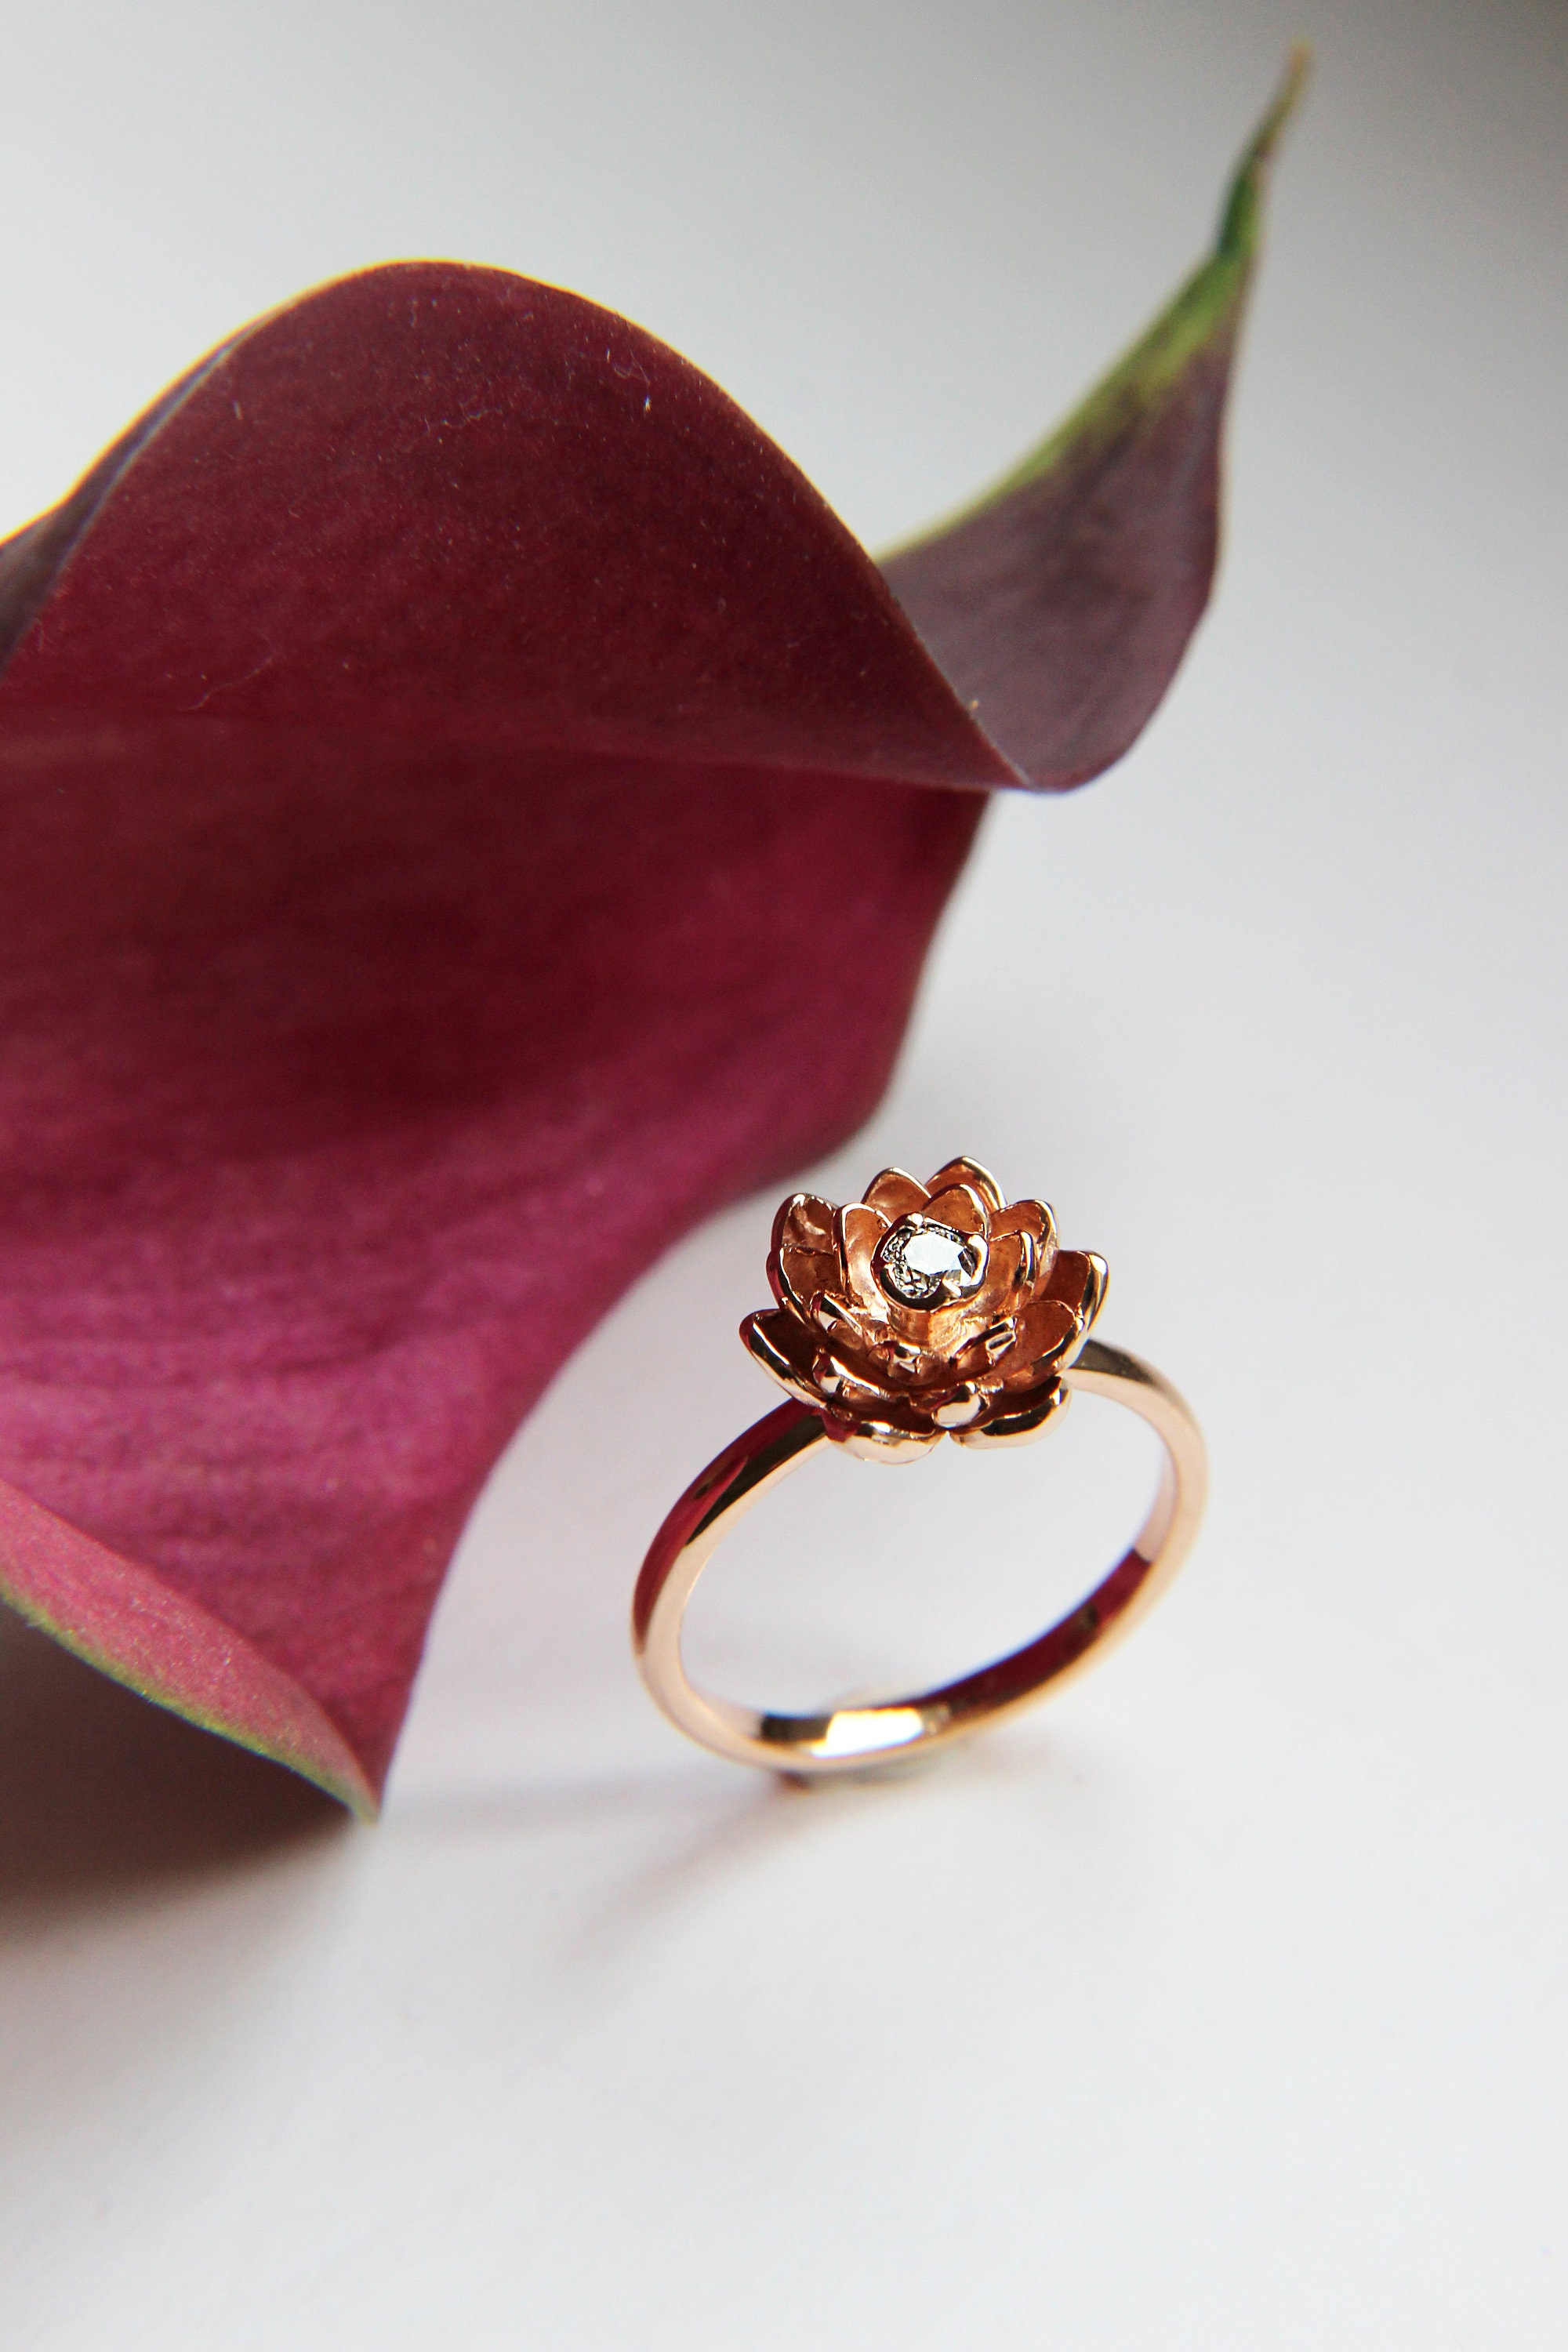 Gold flower ring for engagement diamond rose gold ring unique gold flower ring for engagement diamond rose gold ring unique proposal ring lotus delicate ring 14k gold ring floral golden jewelry izmirmasajfo